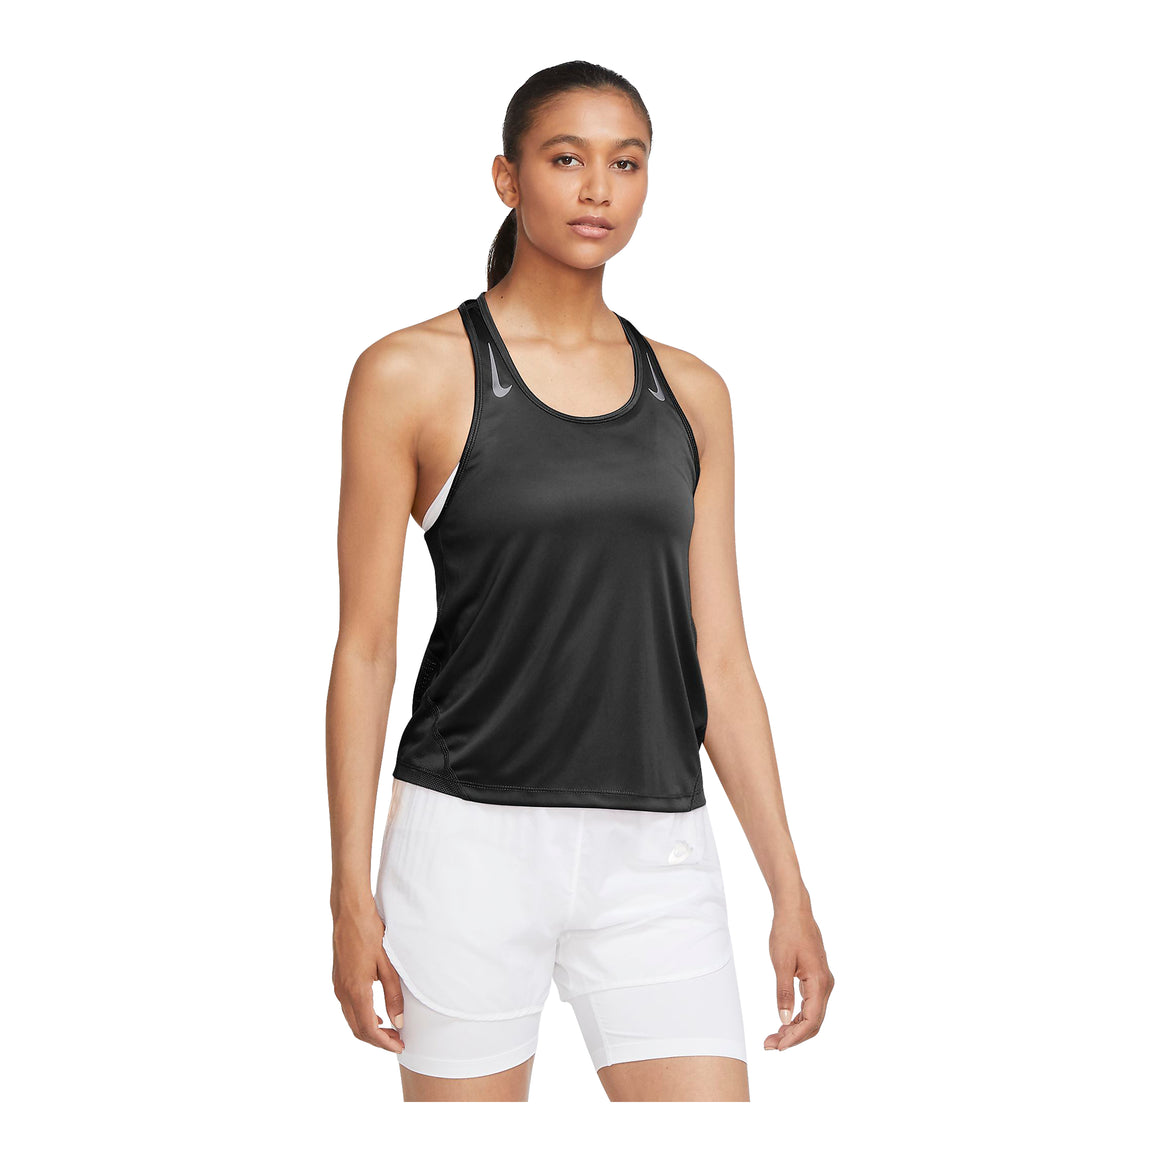 Miler Running Singlet for Women in Black/Reflective Silver